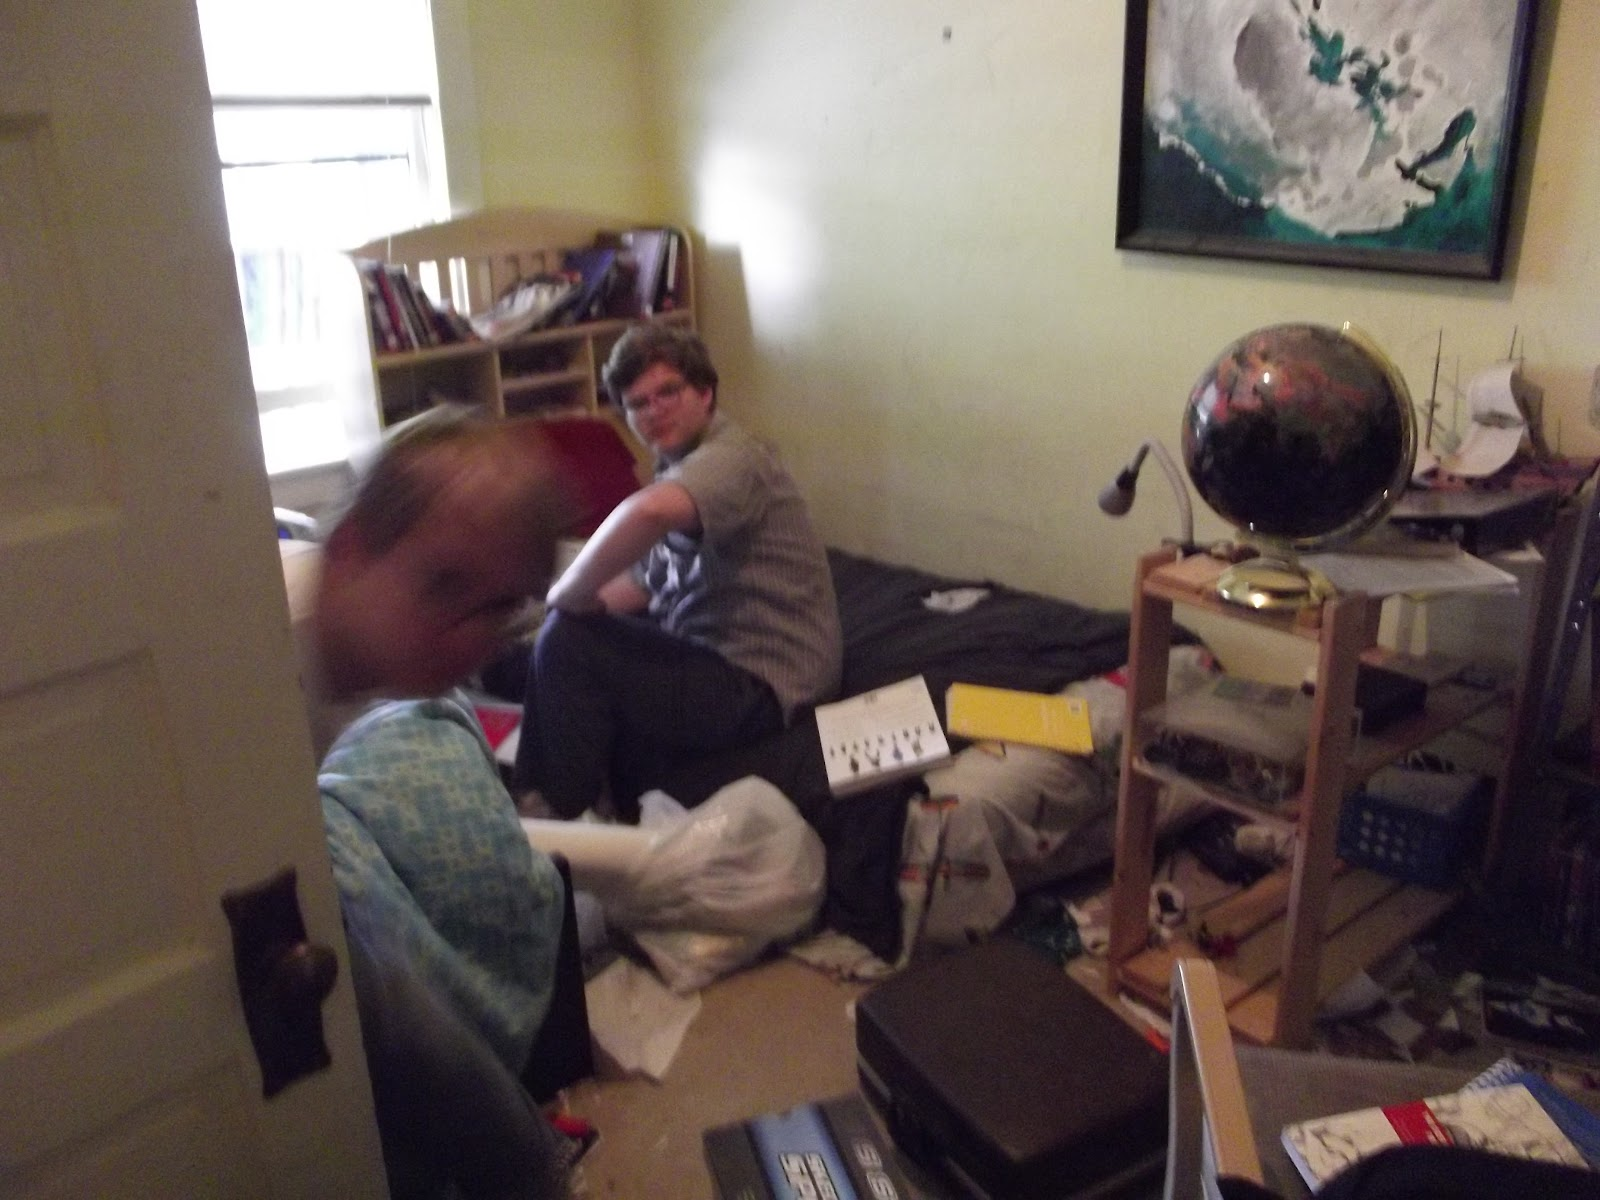 Teenage boy at the start of a decluttering journey